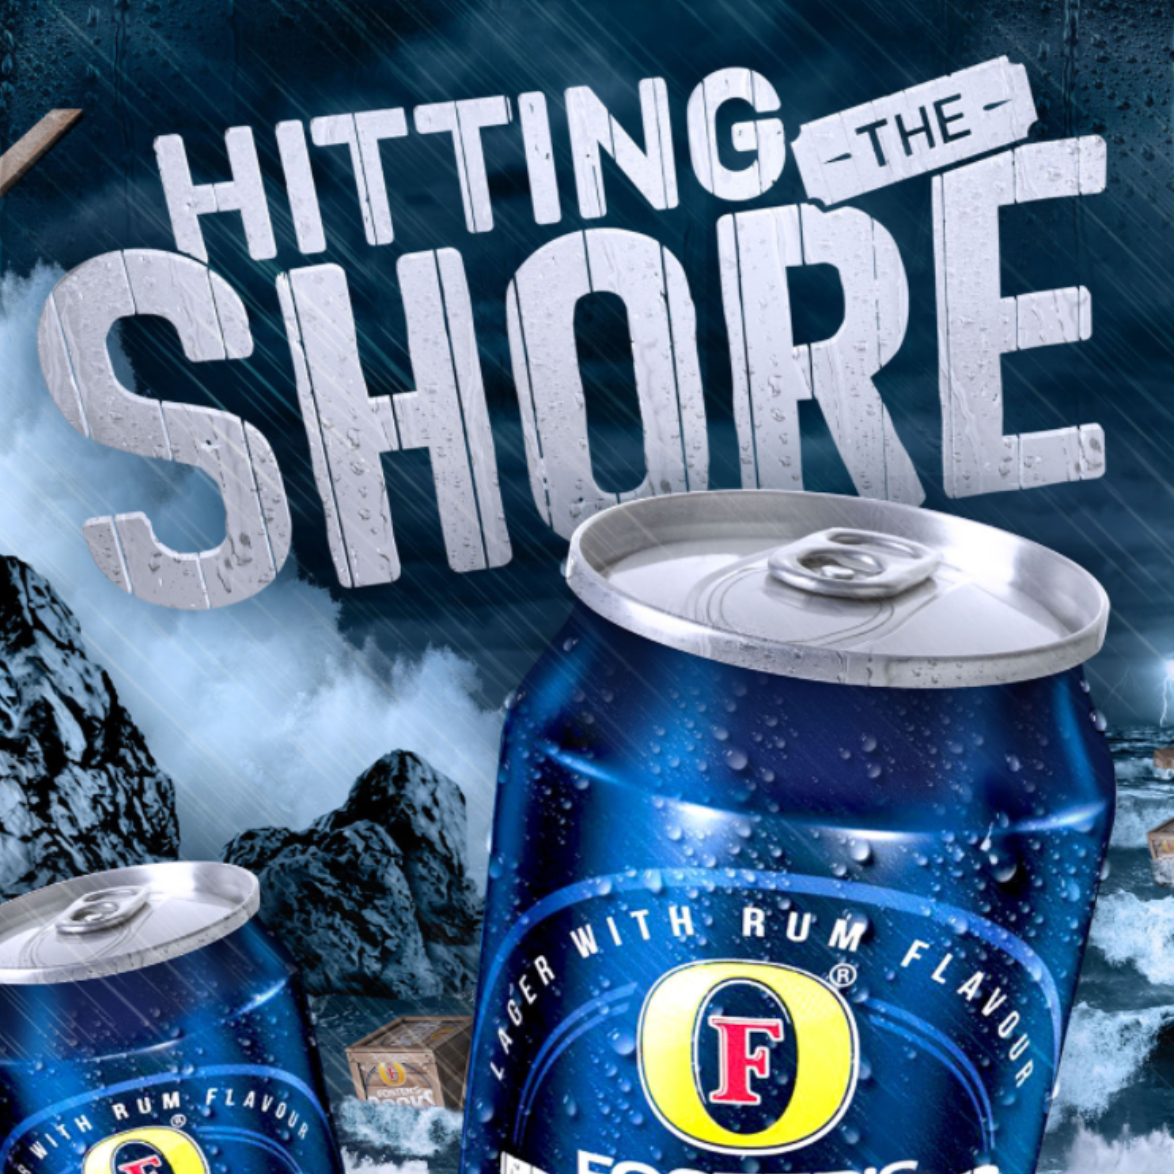 FOSTER'S ROCKS - HITTING THE SHORE